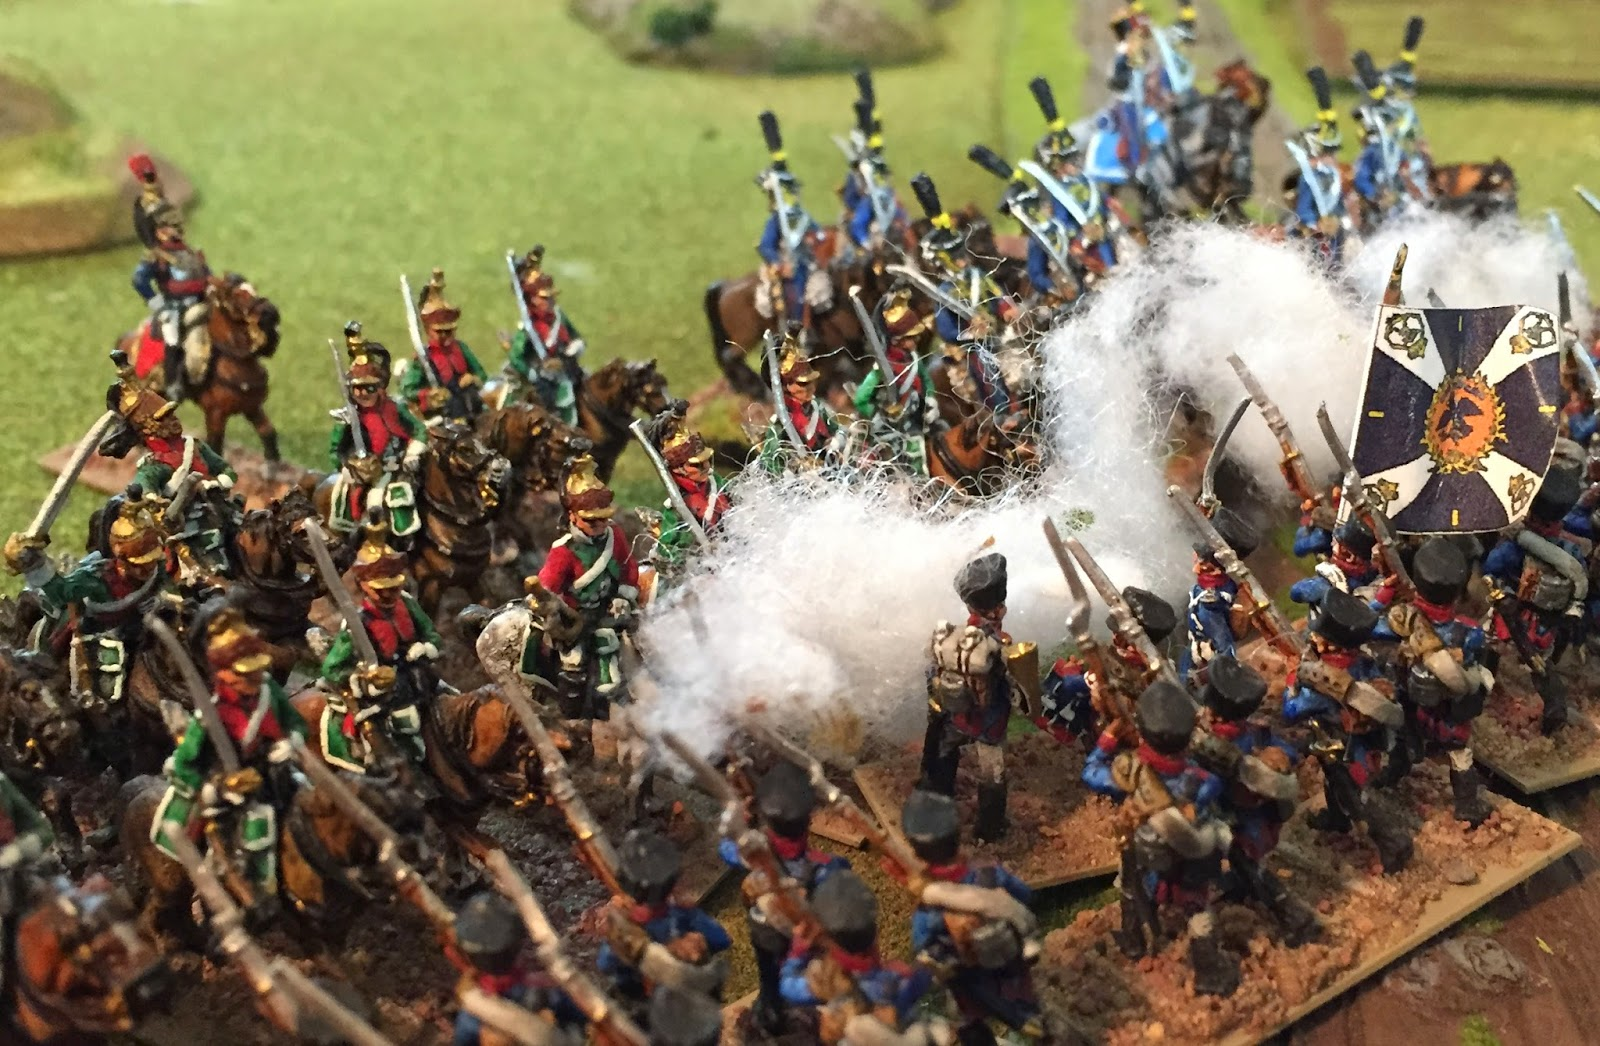 Napoleonic 15mm Rules Rules For Napoleonics in